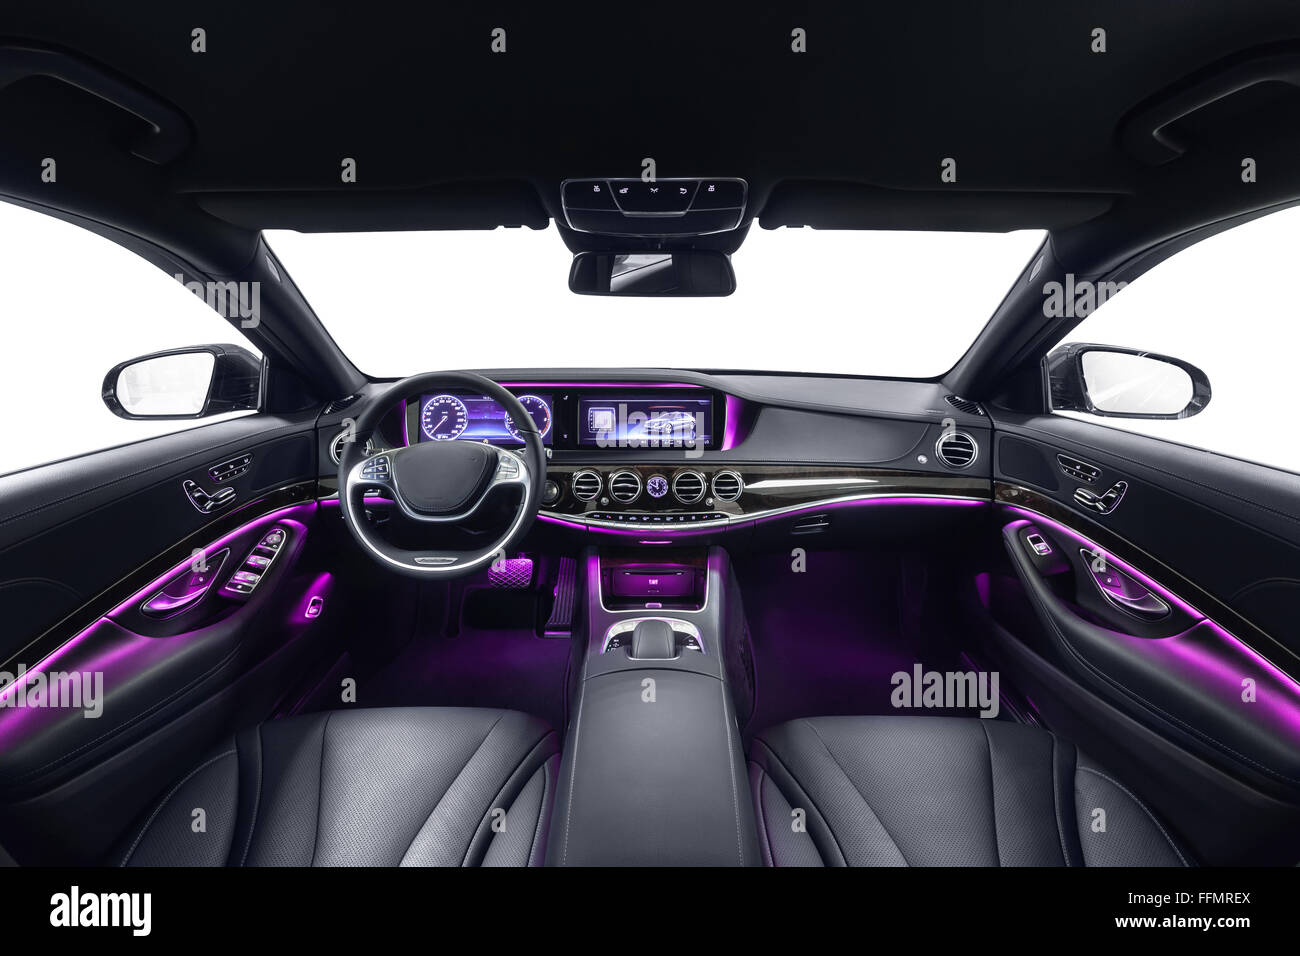 Car interior luxury black seats with violet ambient light Stock     Car interior luxury black seats with violet ambient light  Comfortable  modern salon  Cleaning and detailing car service